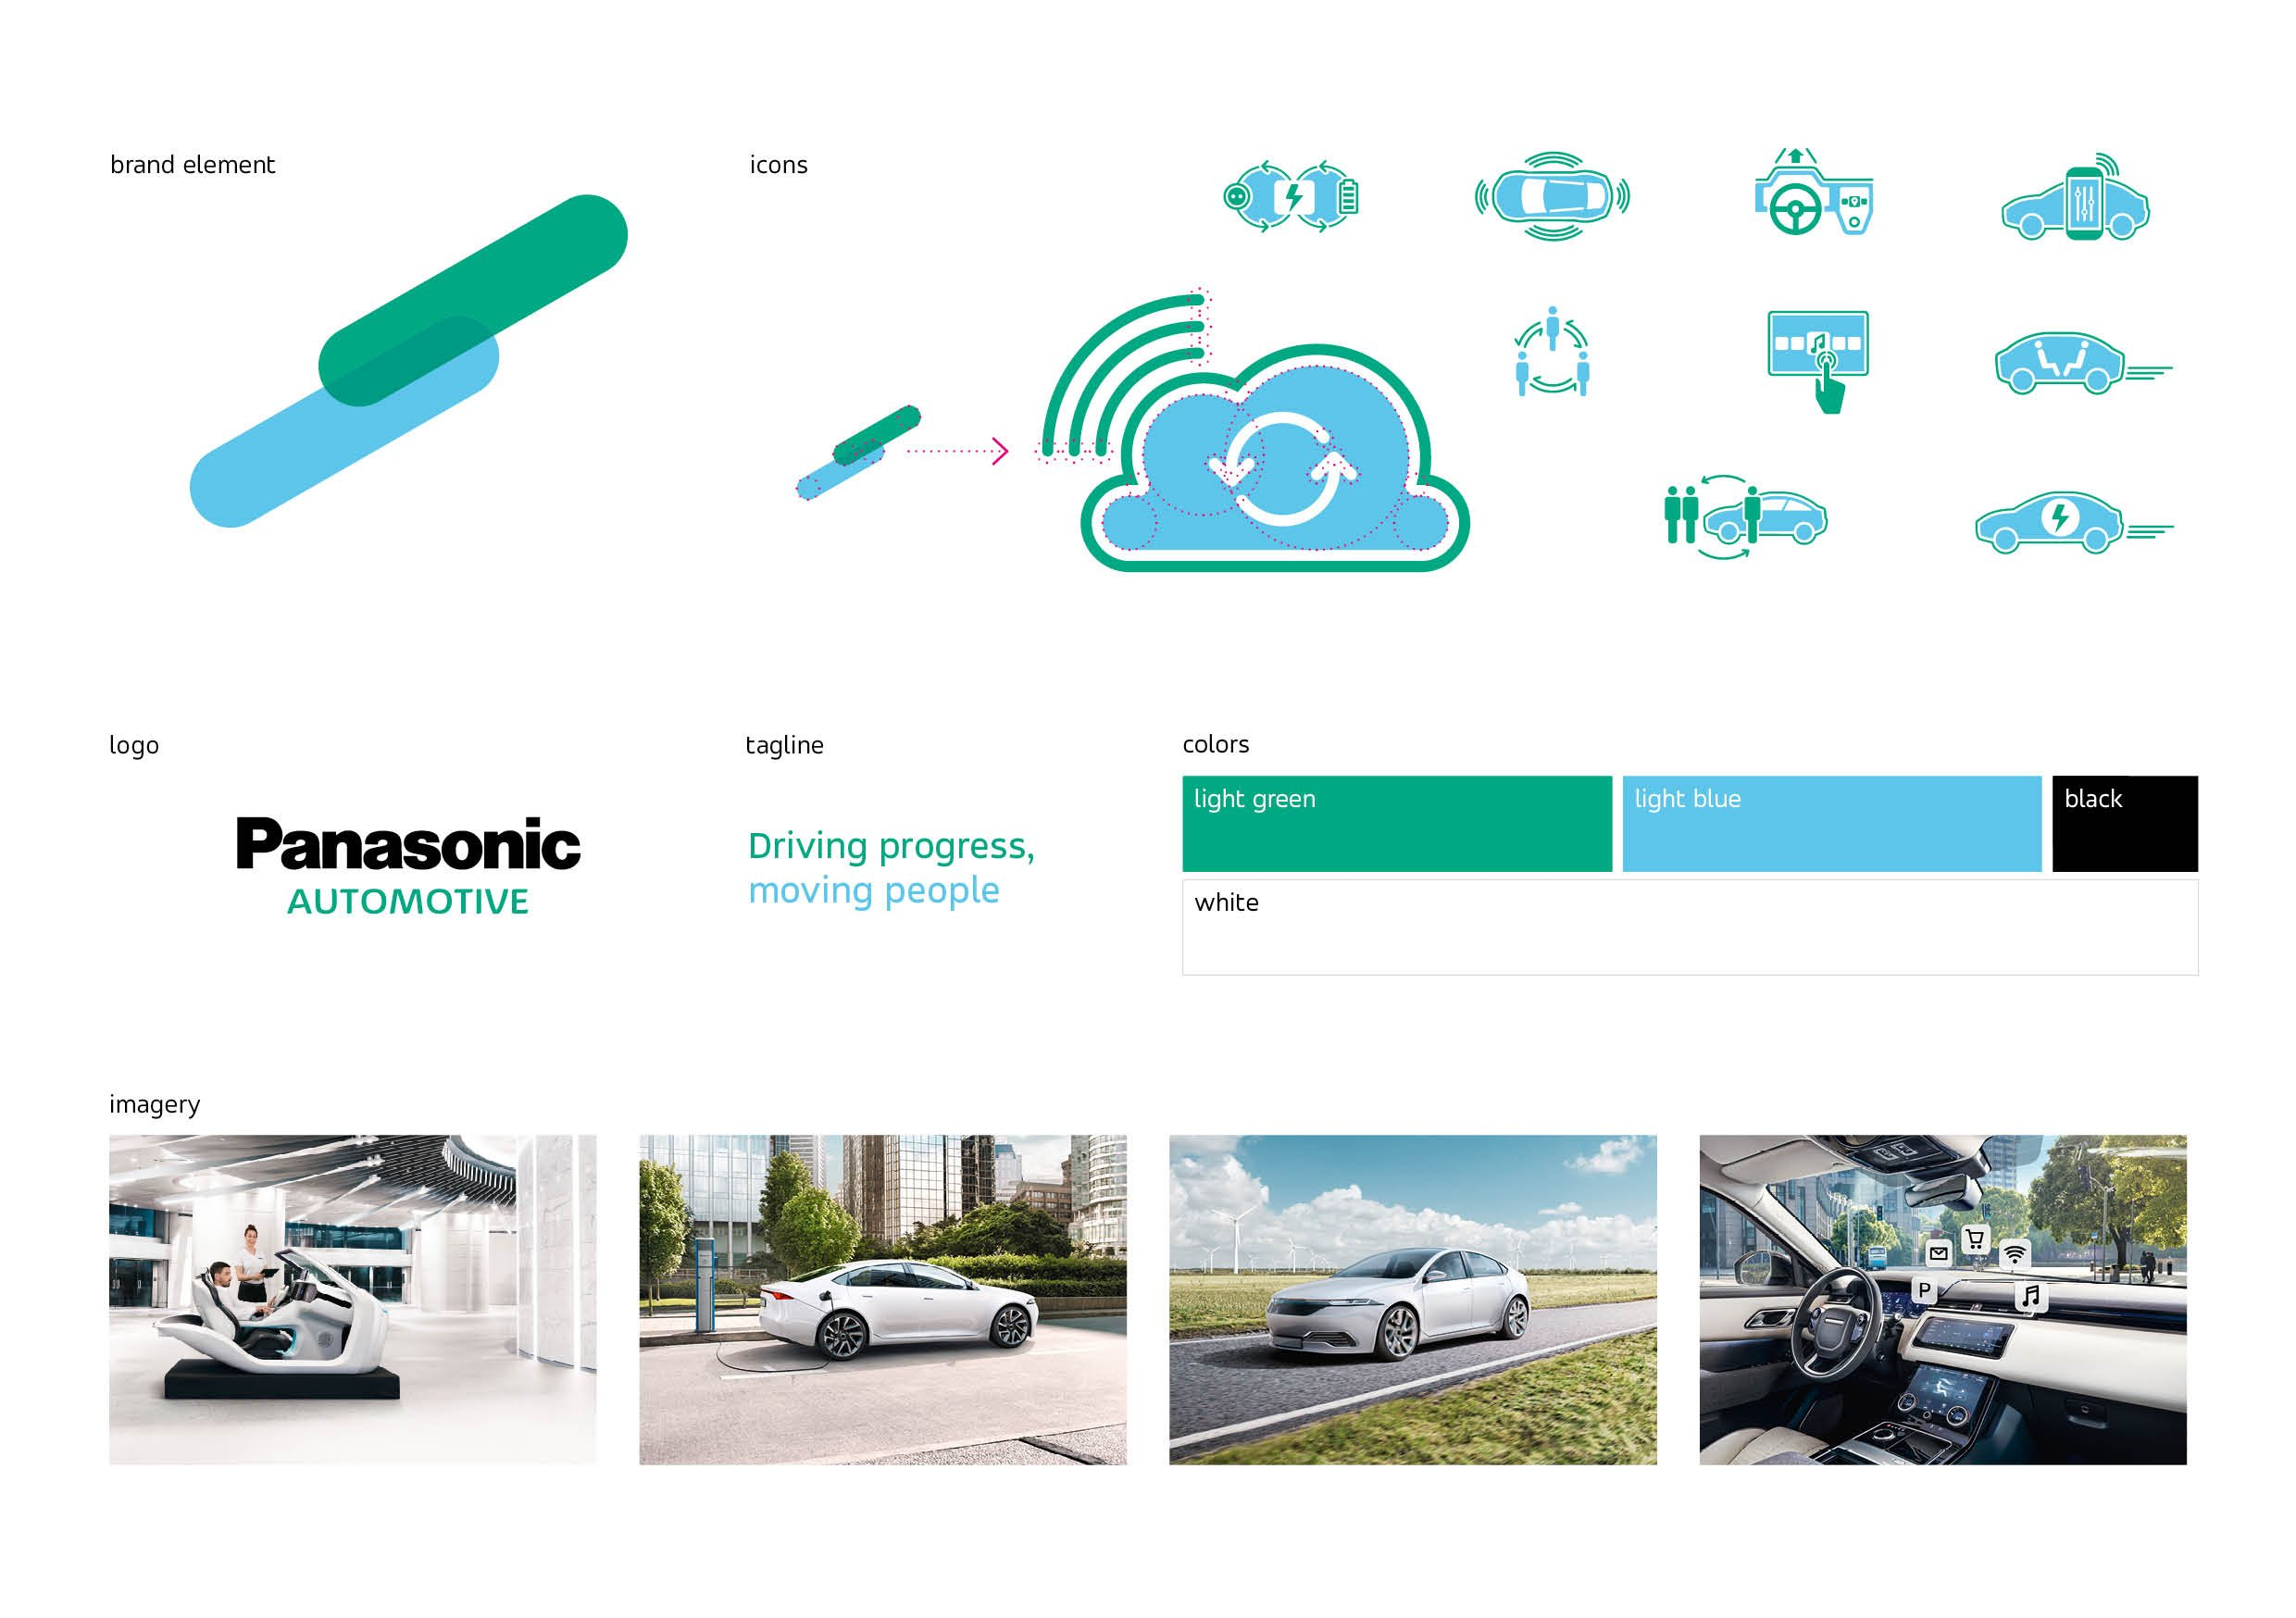 Panasonic Automotive's brand design